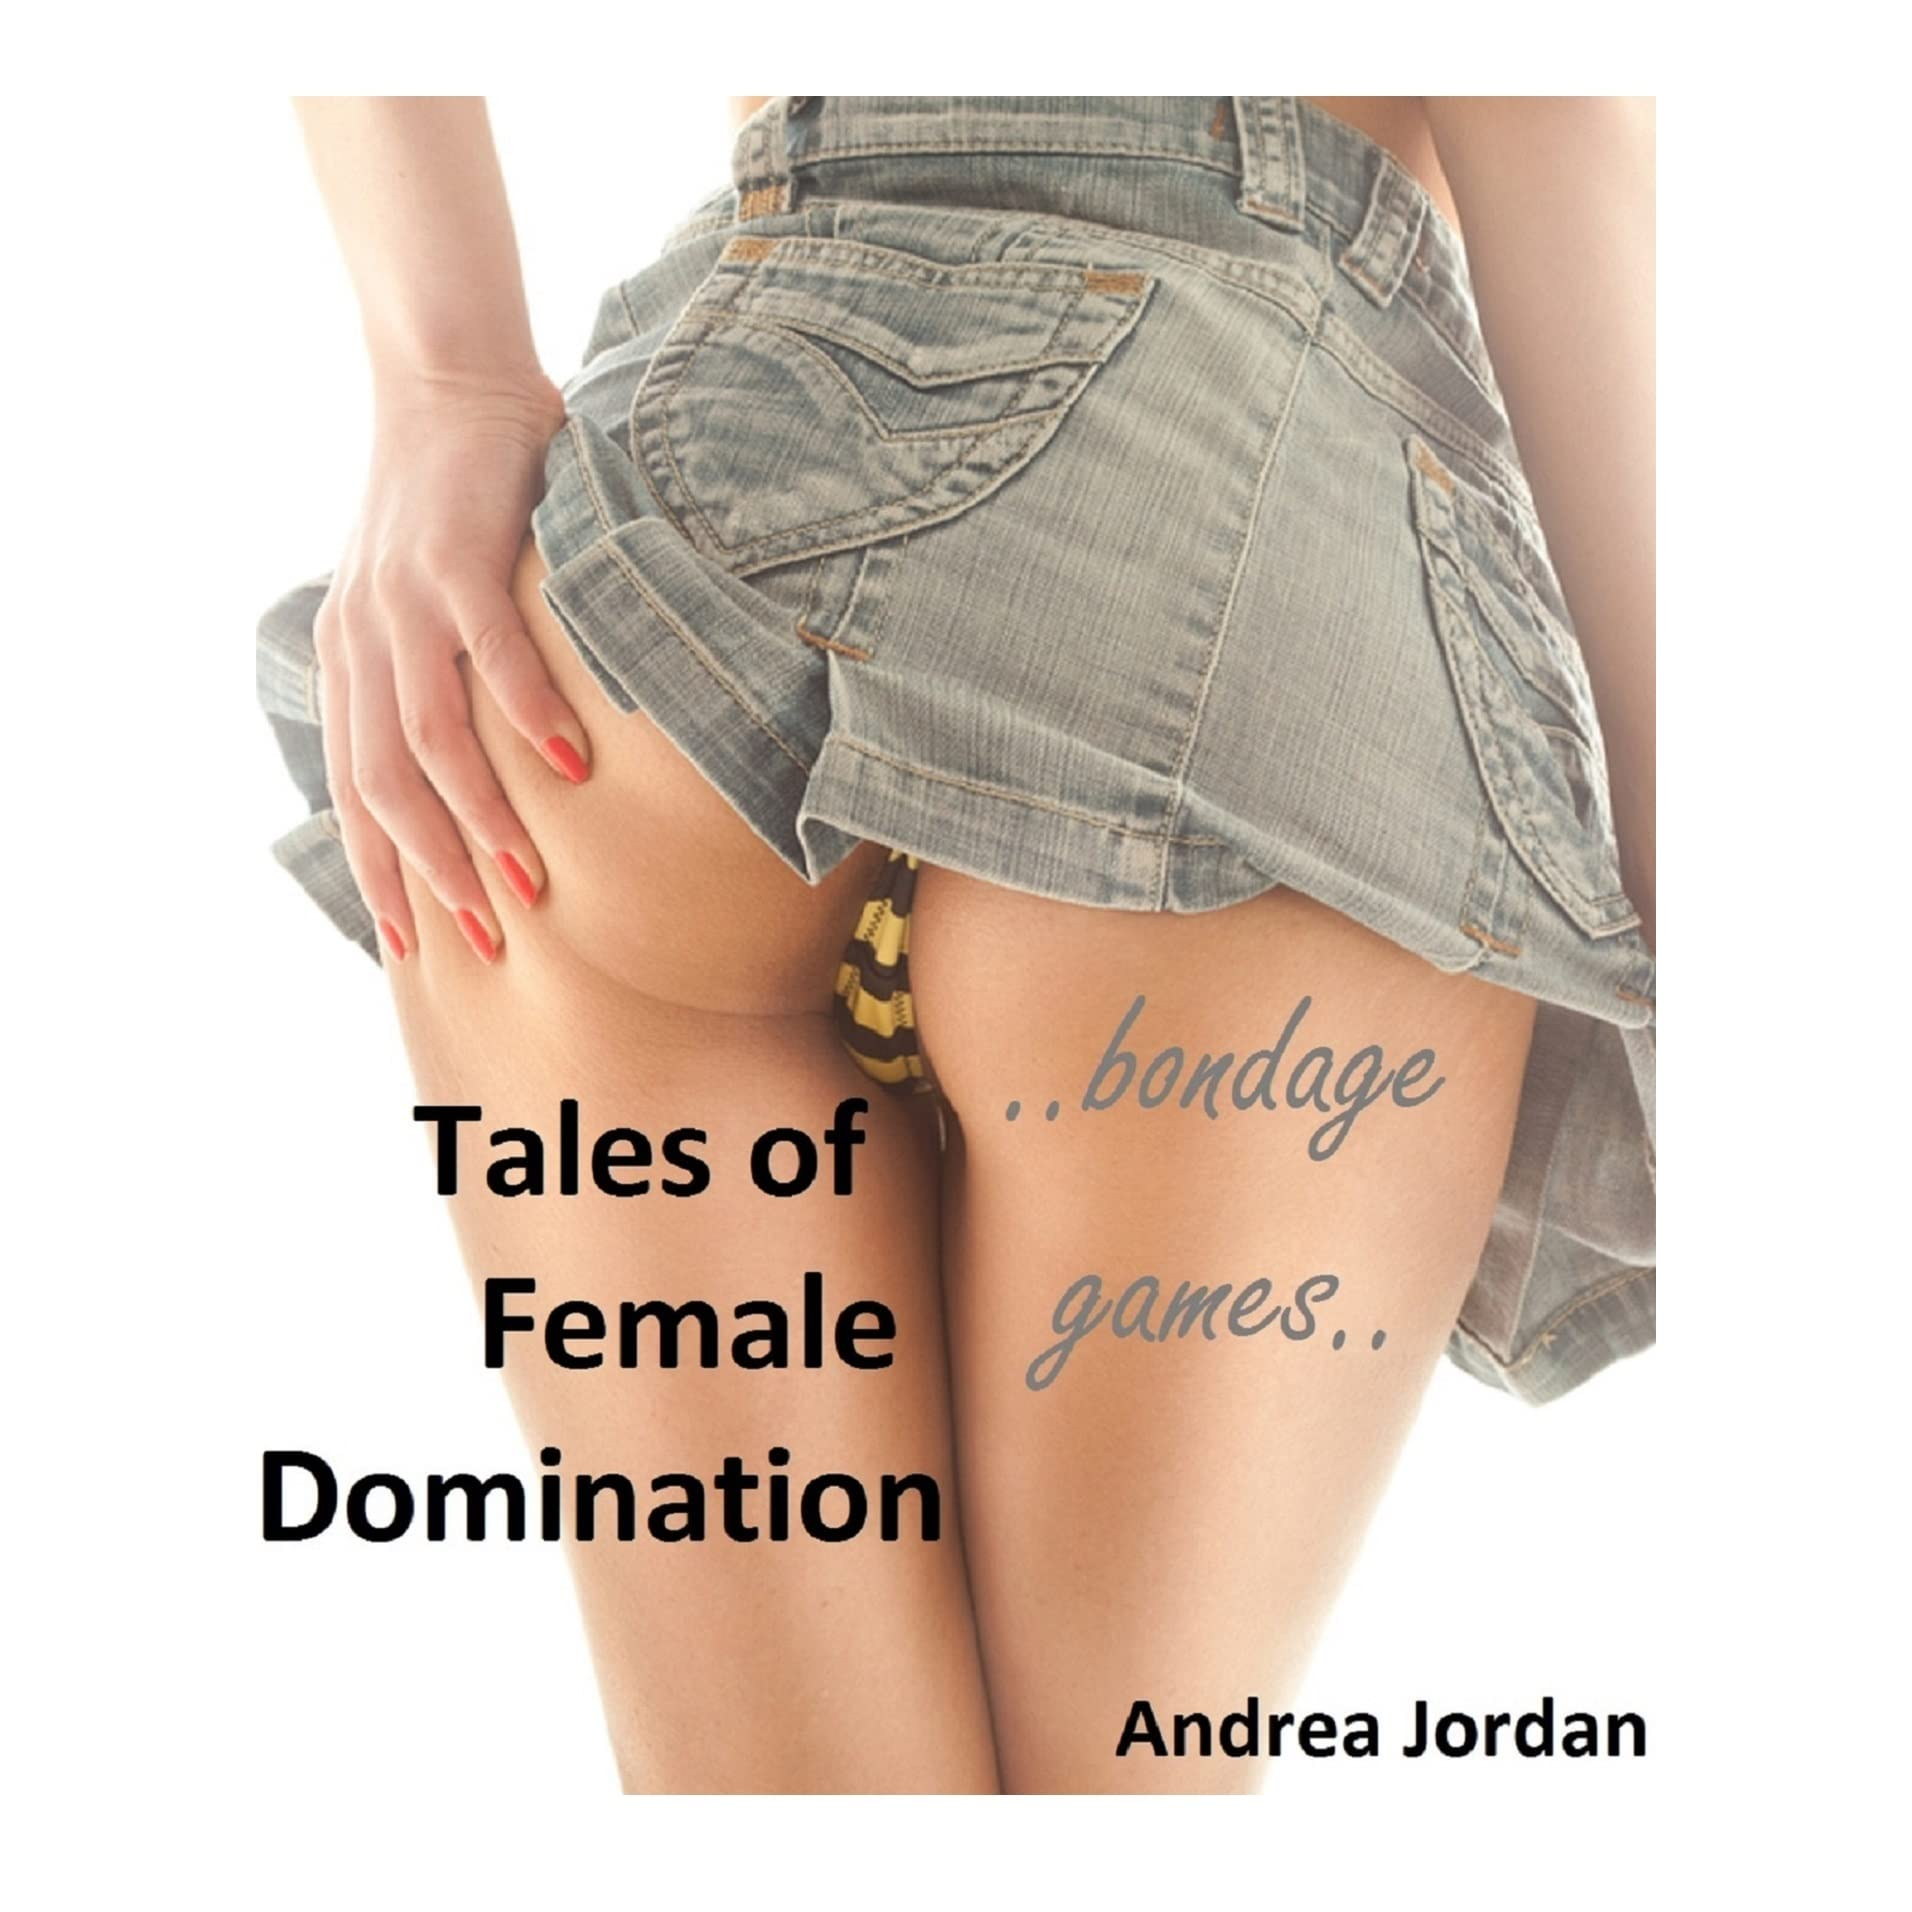 """Karla Schneider's Reviews > Tales of Female Domination: Bondage Games""""/></a></p> <h2>Thank you, Mistress!</h2> <p><iframe height=481 width=608 src="""